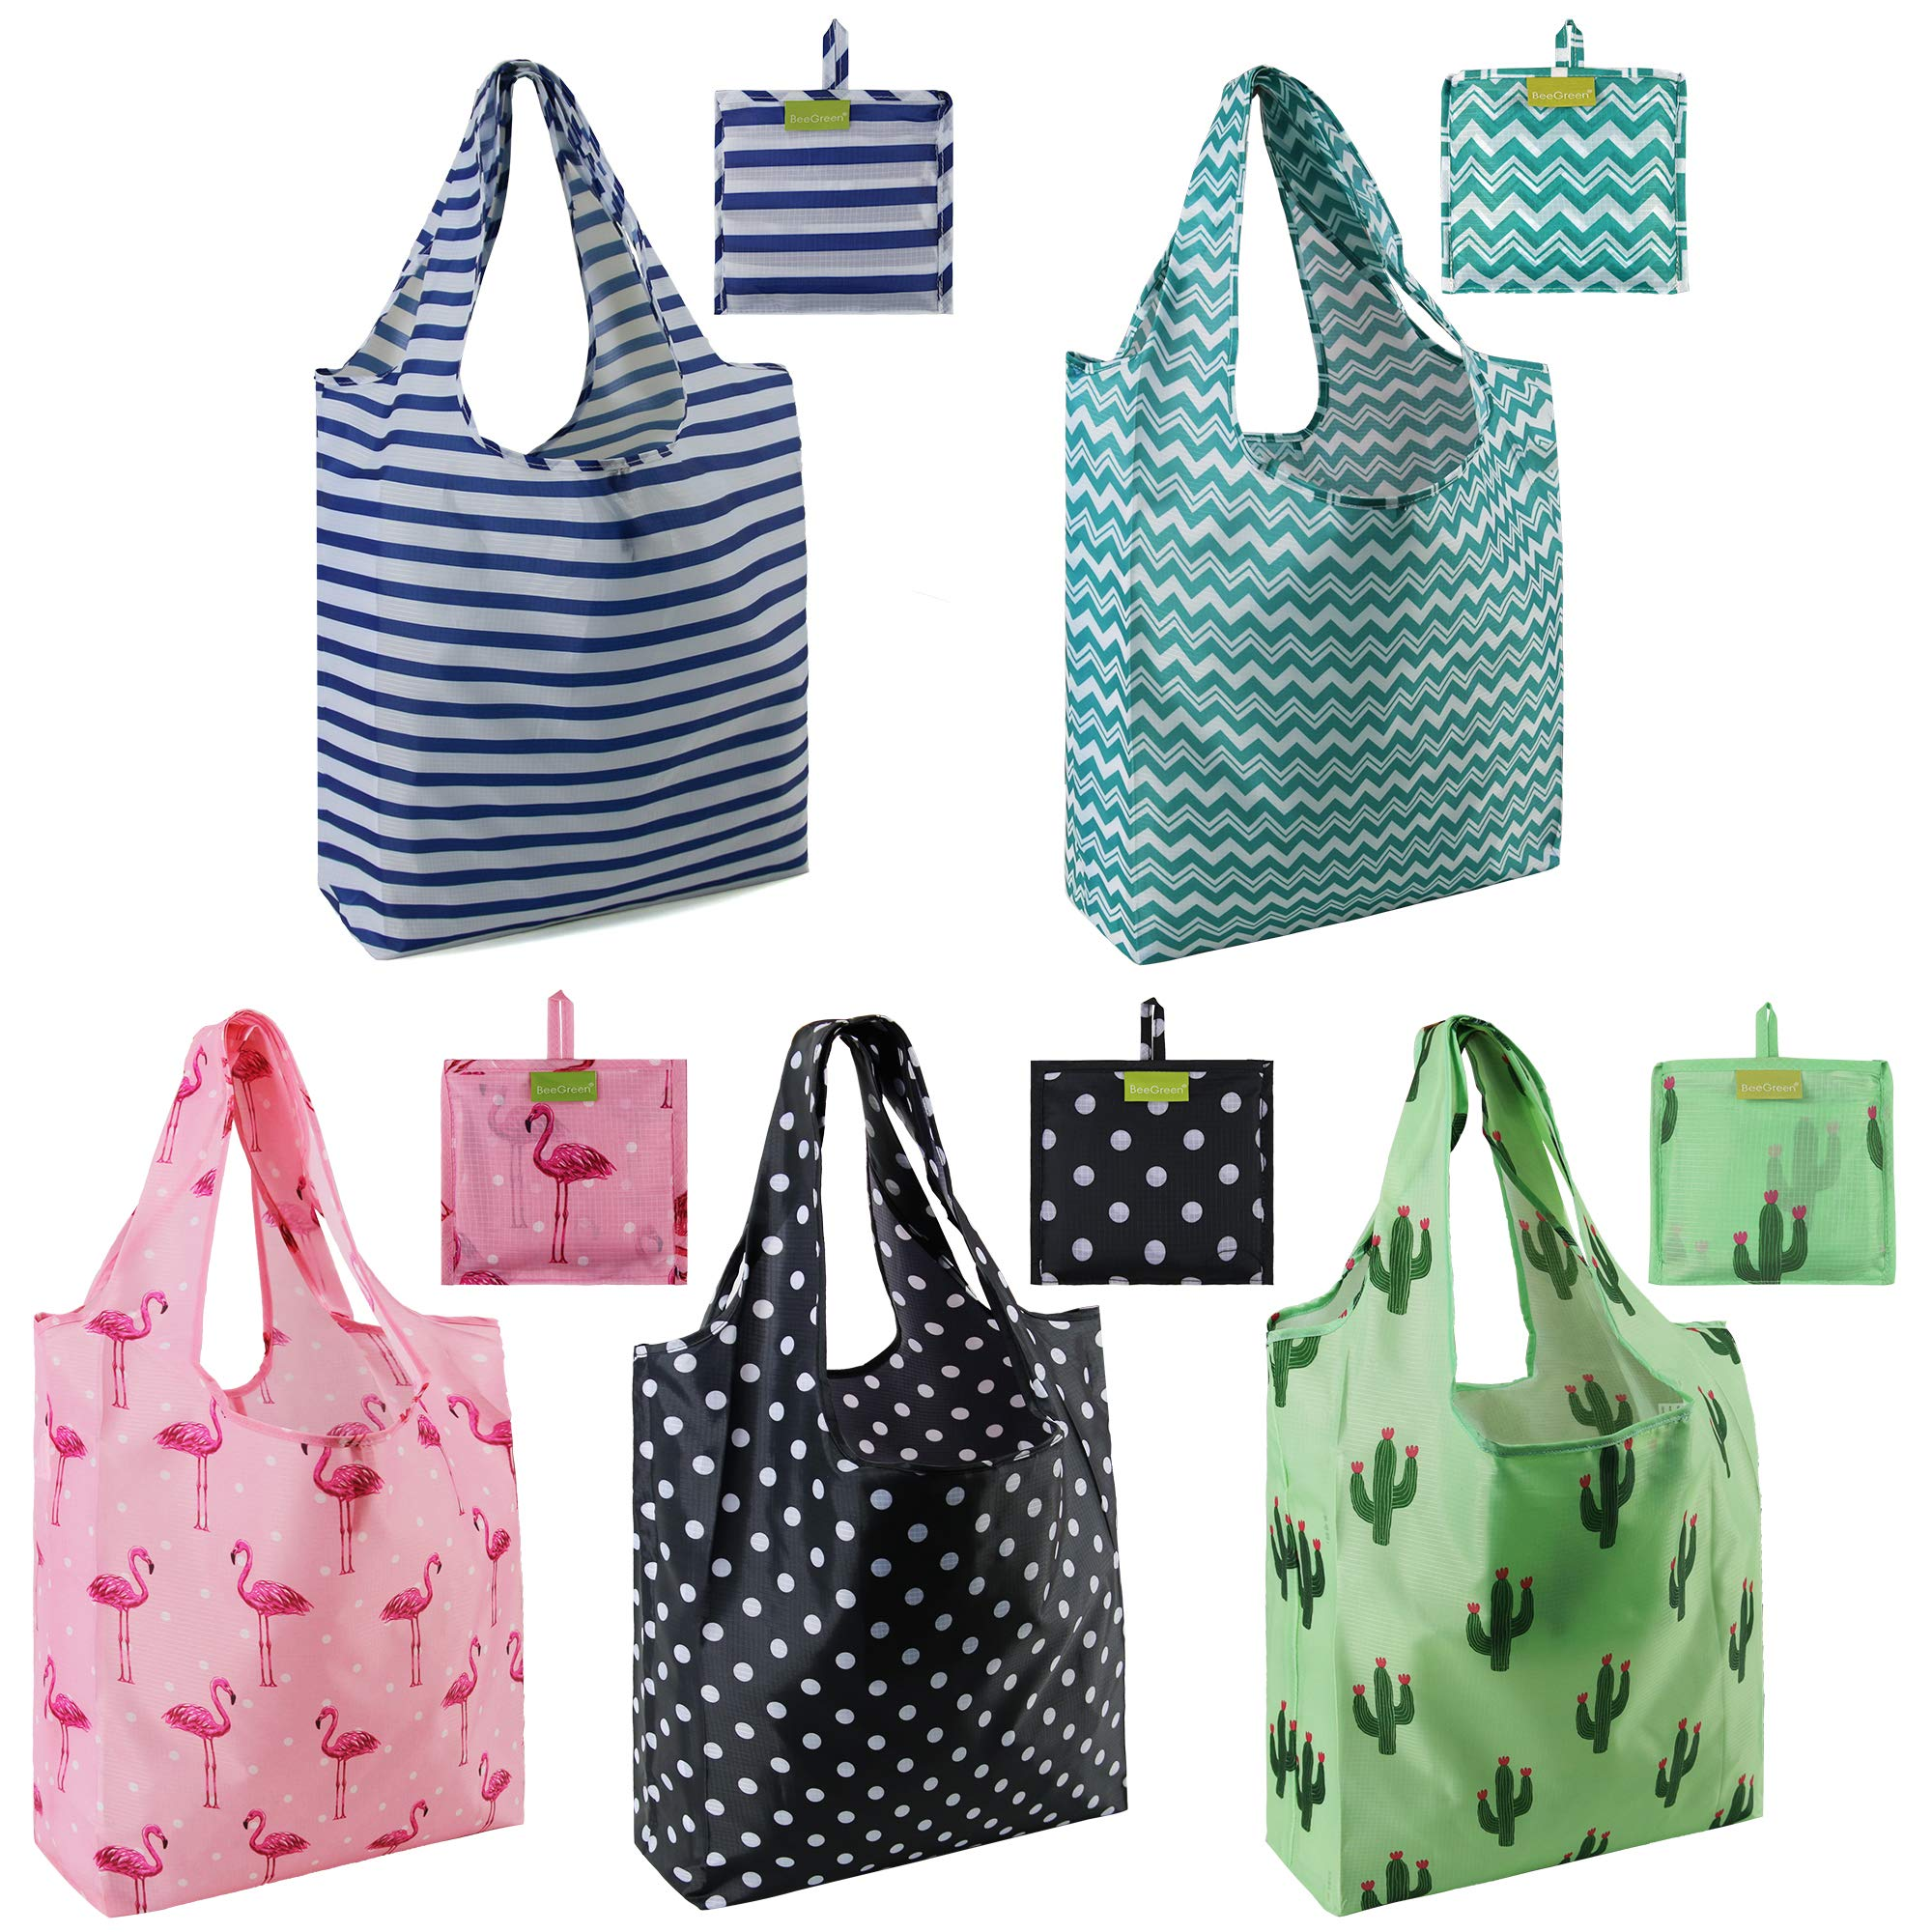 Foldable Reusable Shopping Bags 6 Pack Washable Reusable Grocery Bags X-Large 50LB Tote Gift Bags Ripstop Waterproof Lightweight Durable Cute Animal Design Dog Sea Turtle Elephant Alpaca Hedgehog Bird